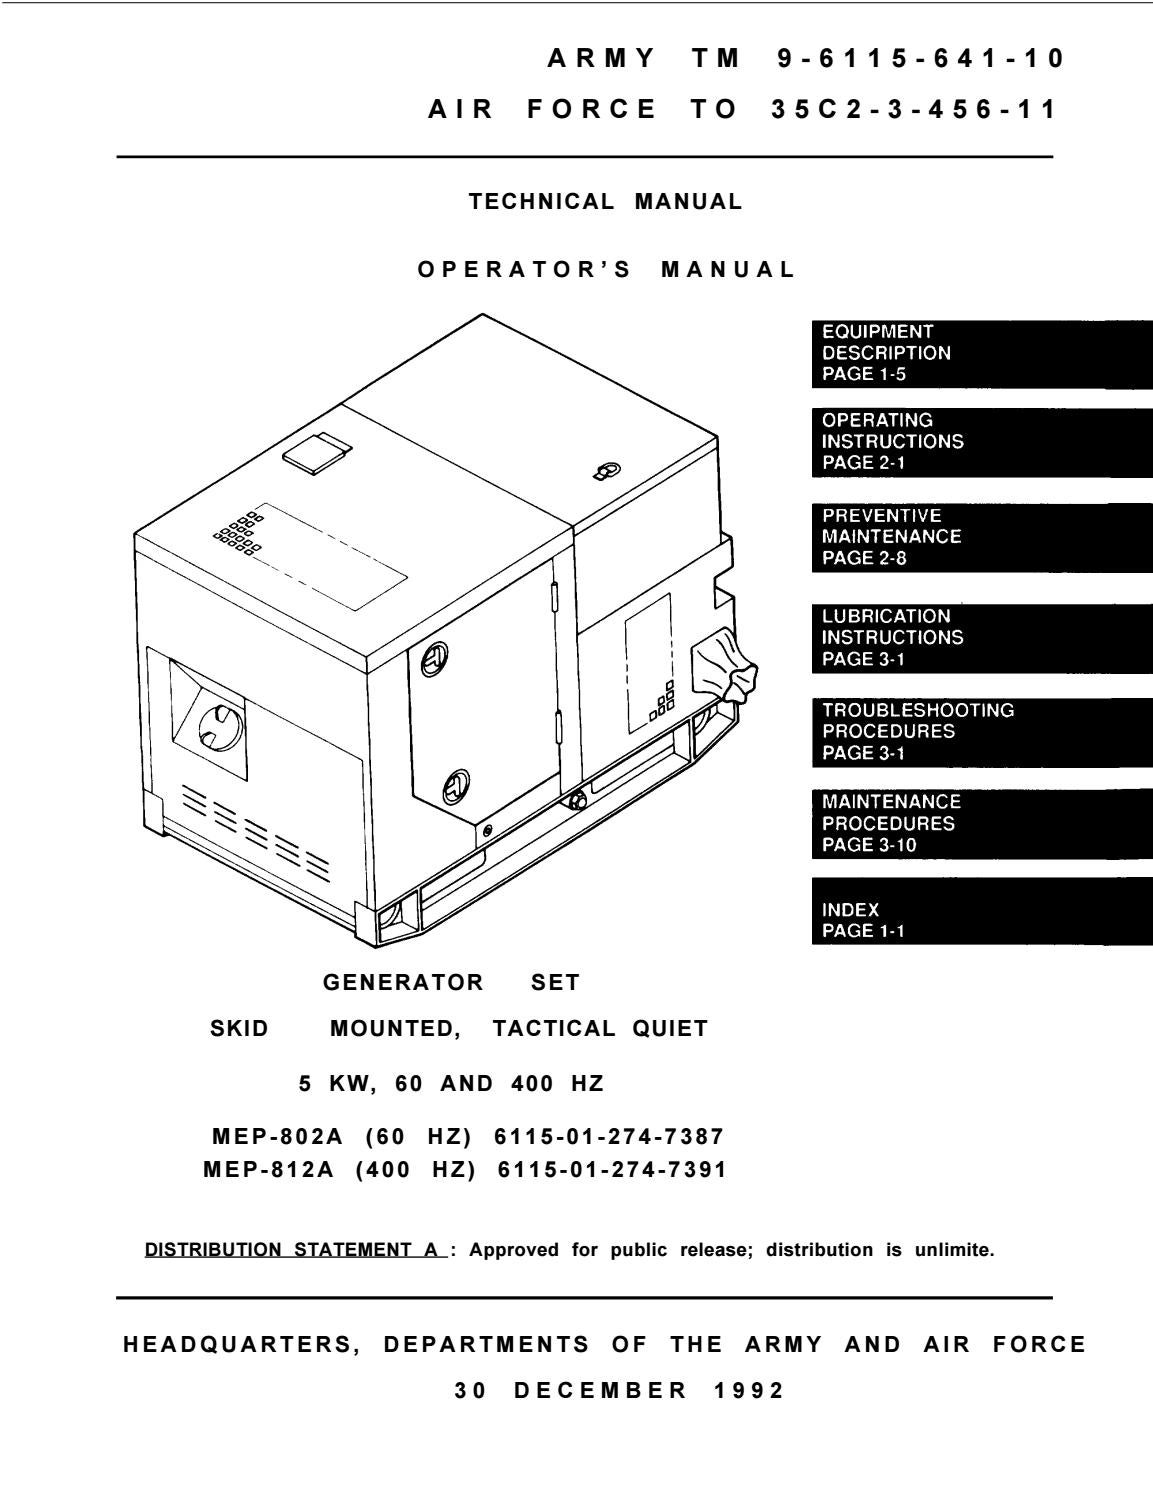 hight resolution of mep 802a 60 hz 6115 01 274 7387 mep 812a 400 hz 6115 01 274 7391 operator manual by power generation issuu